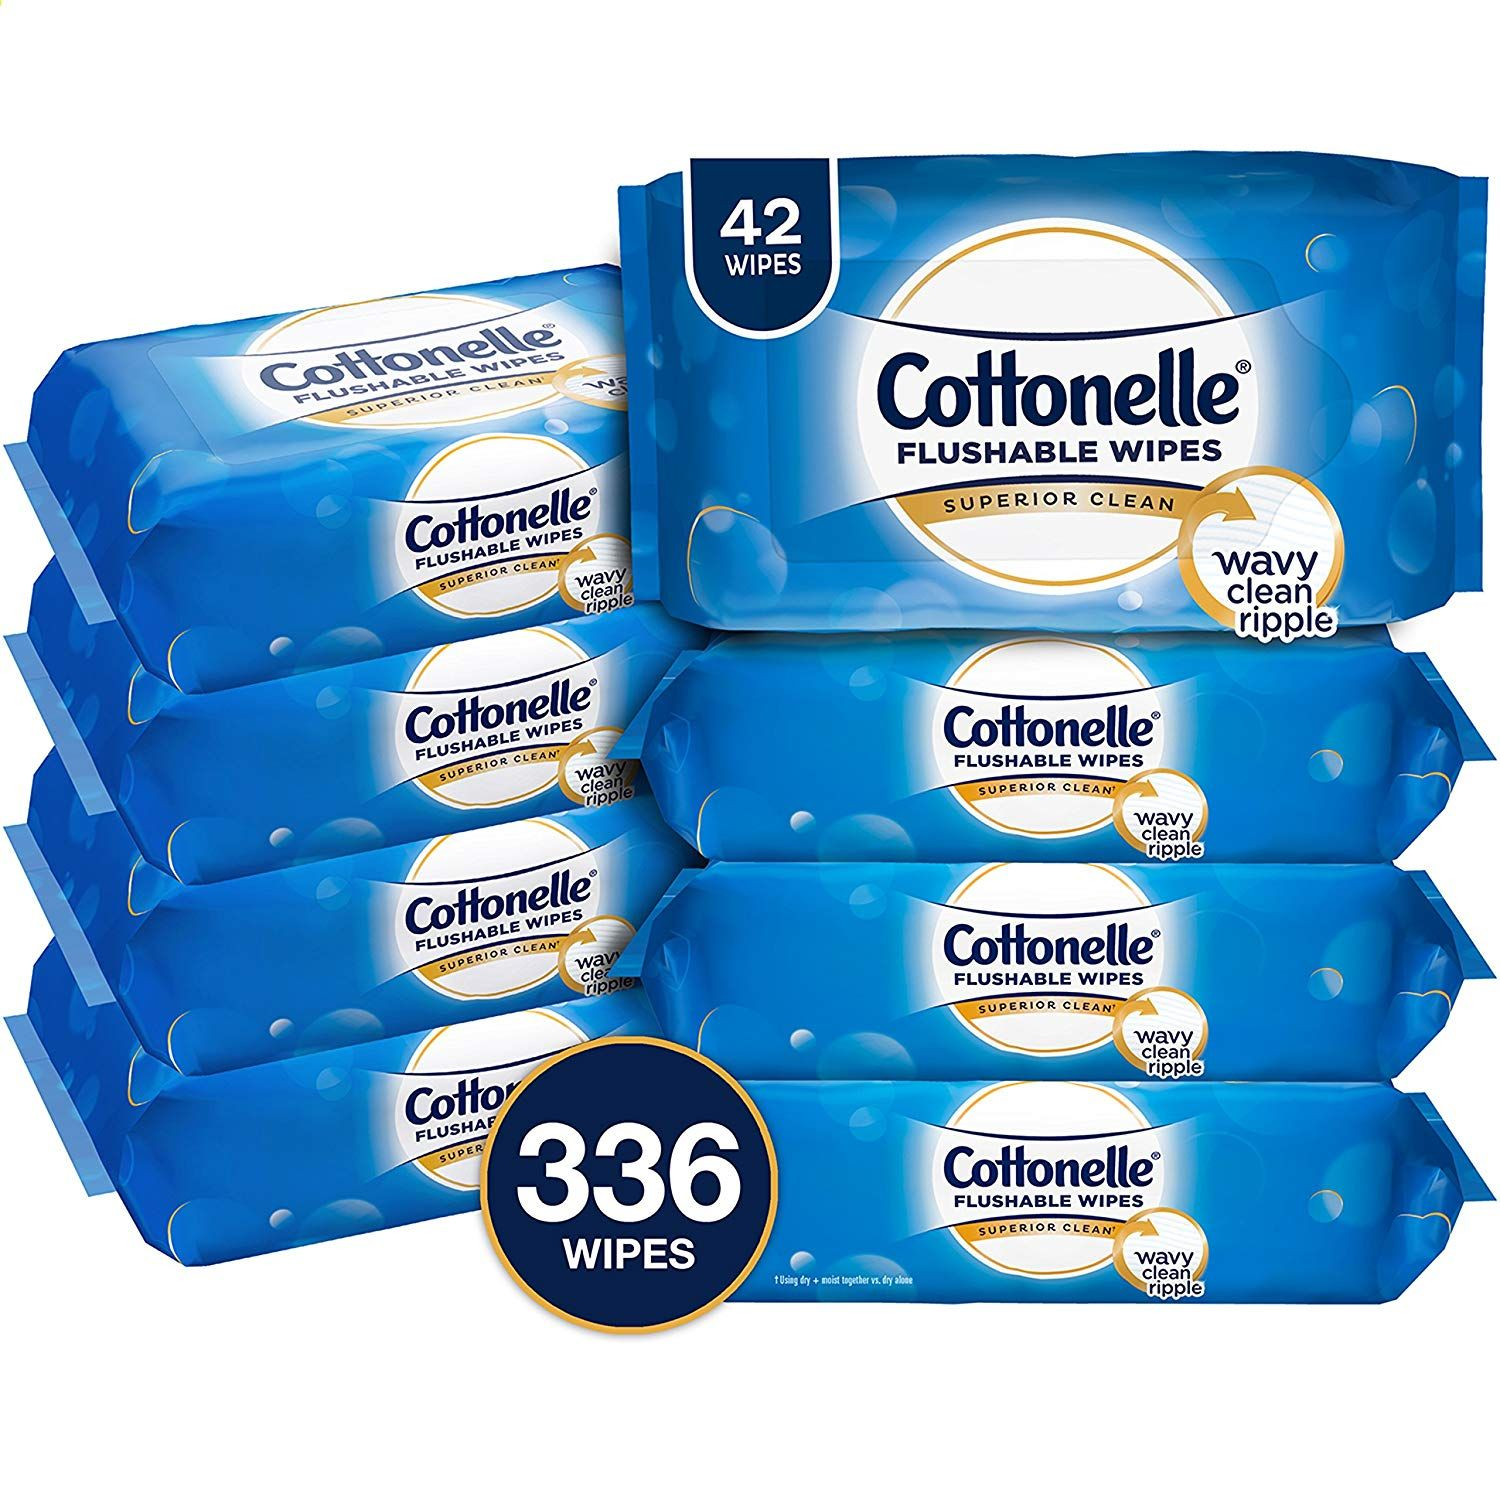 Cottonelle FreshCare Flushable Cleansing Cloths 336 Wipes